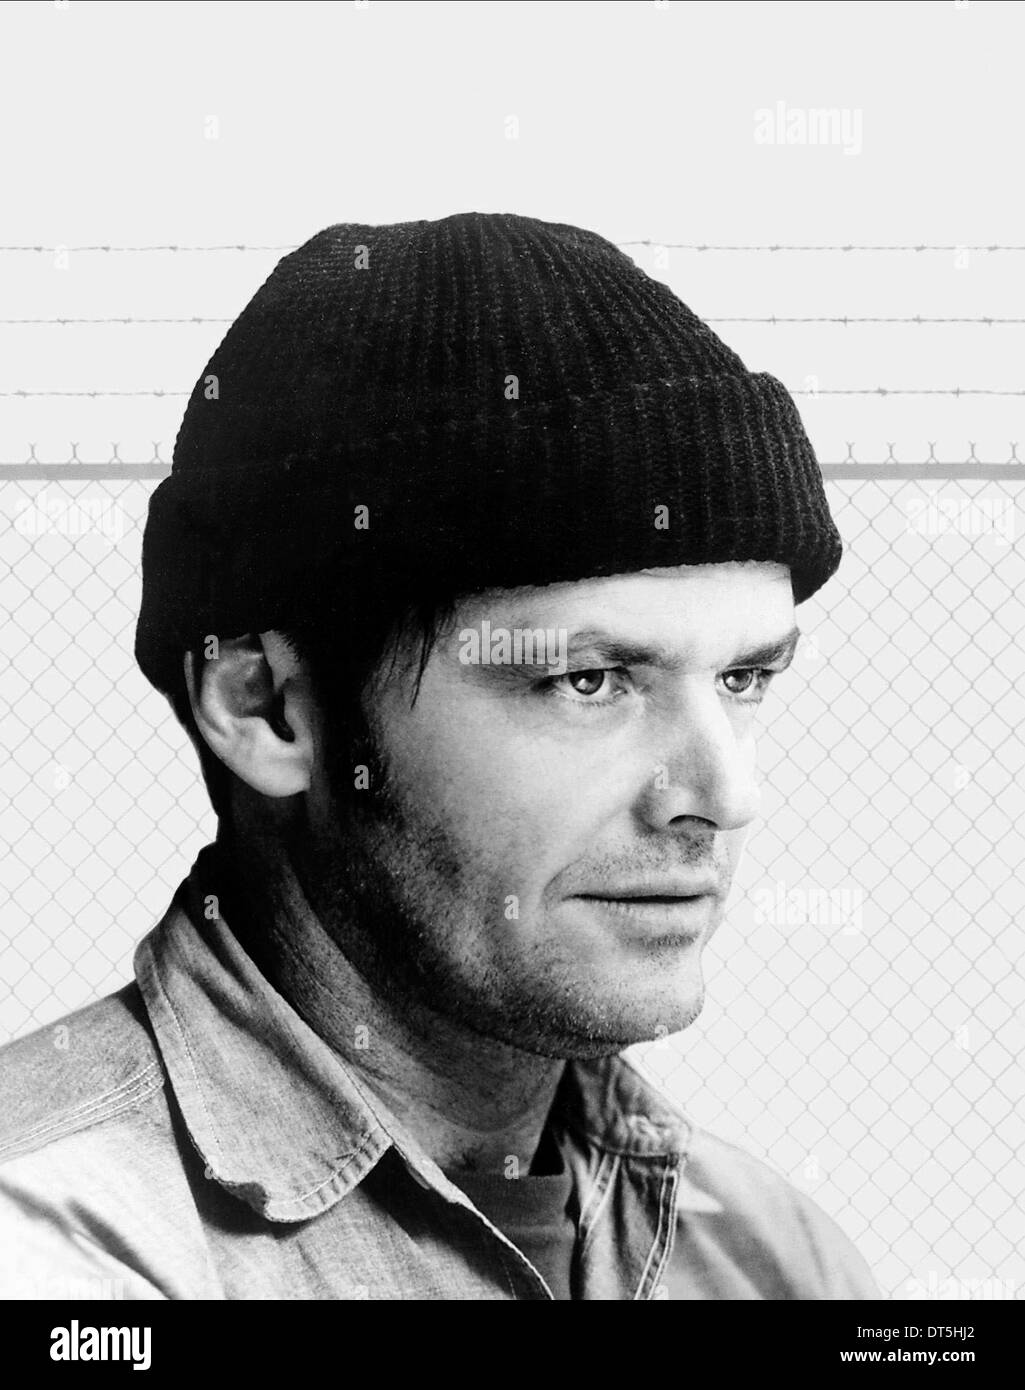 JACK NICHOLSON ONE FLEW OVER THE CUCKOOS NEST (1975) - Stock Image